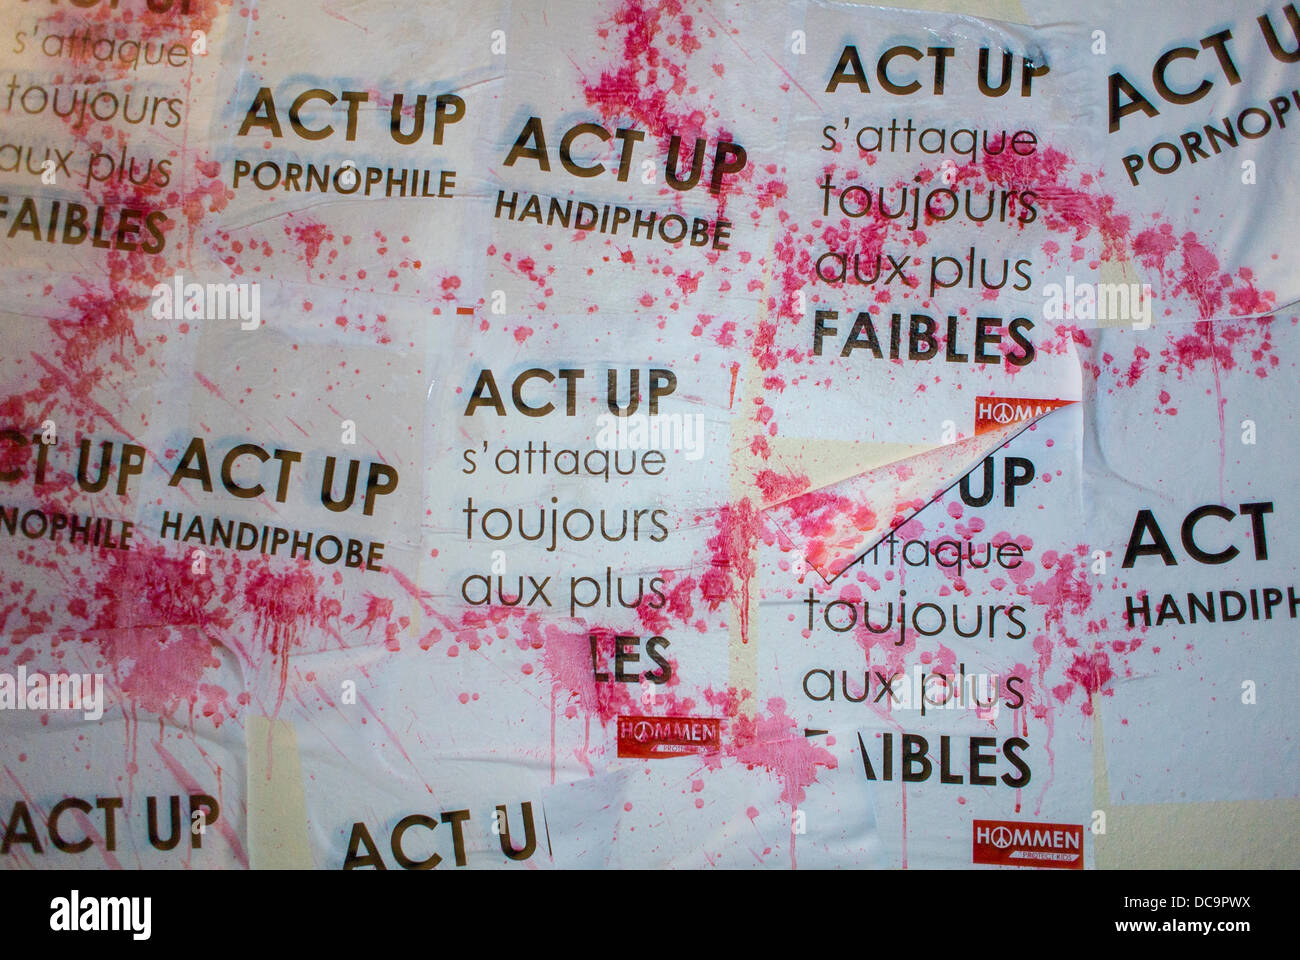 Paris, France, Homophobic Attack Against French AIDS N.G.O., 'Act Up Paris', Signs, Splashed Liquid.French - Stock Image